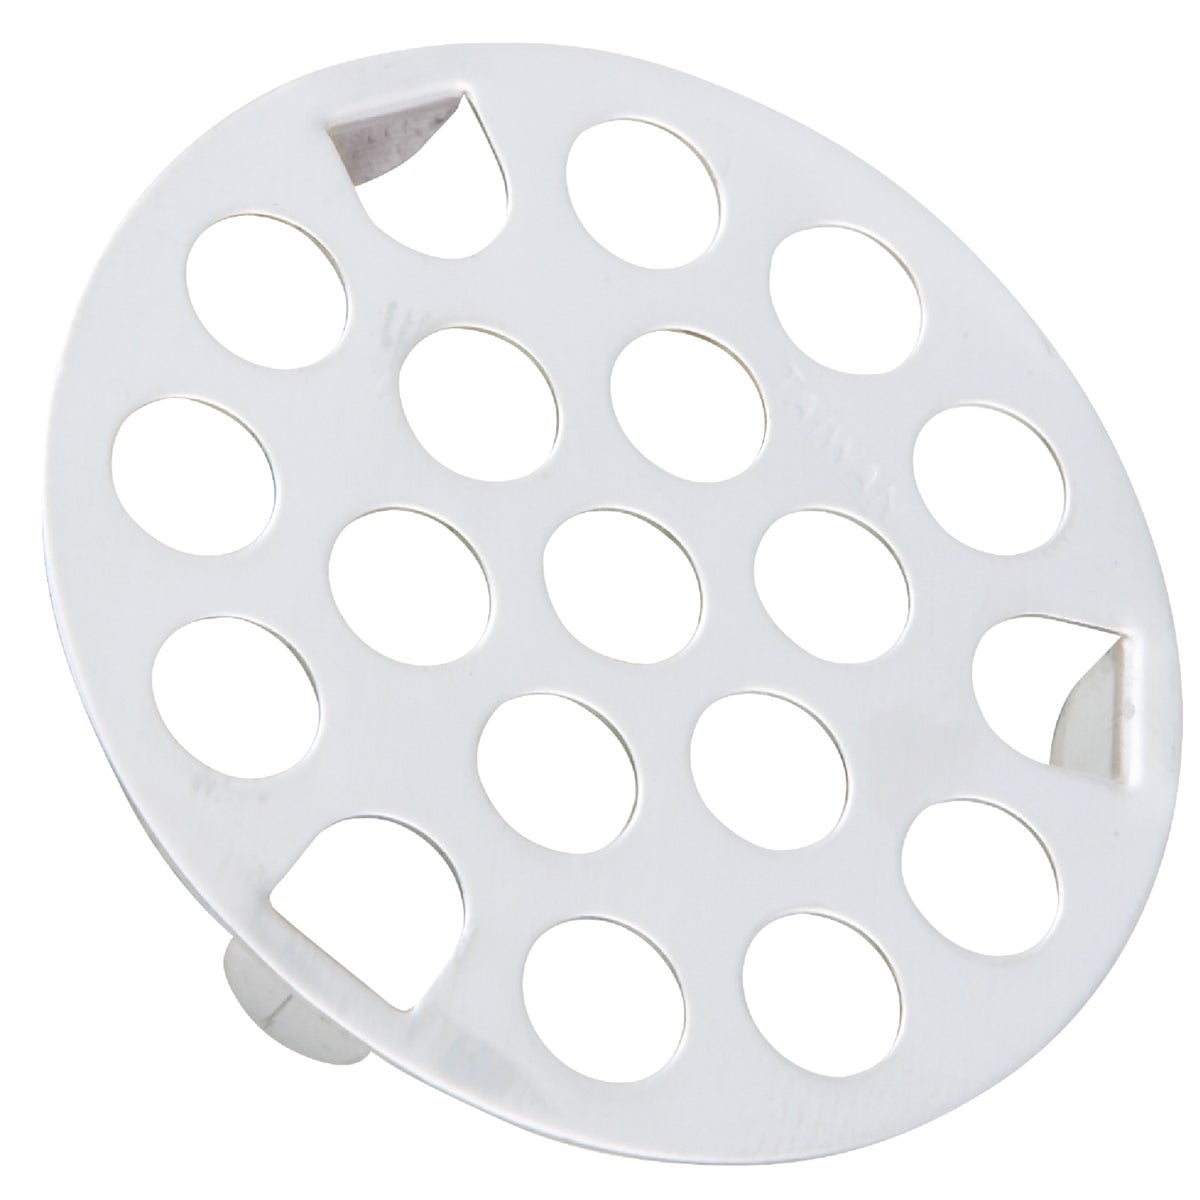 "1-5/8"" STRAINER - 420670 by Do it Best"